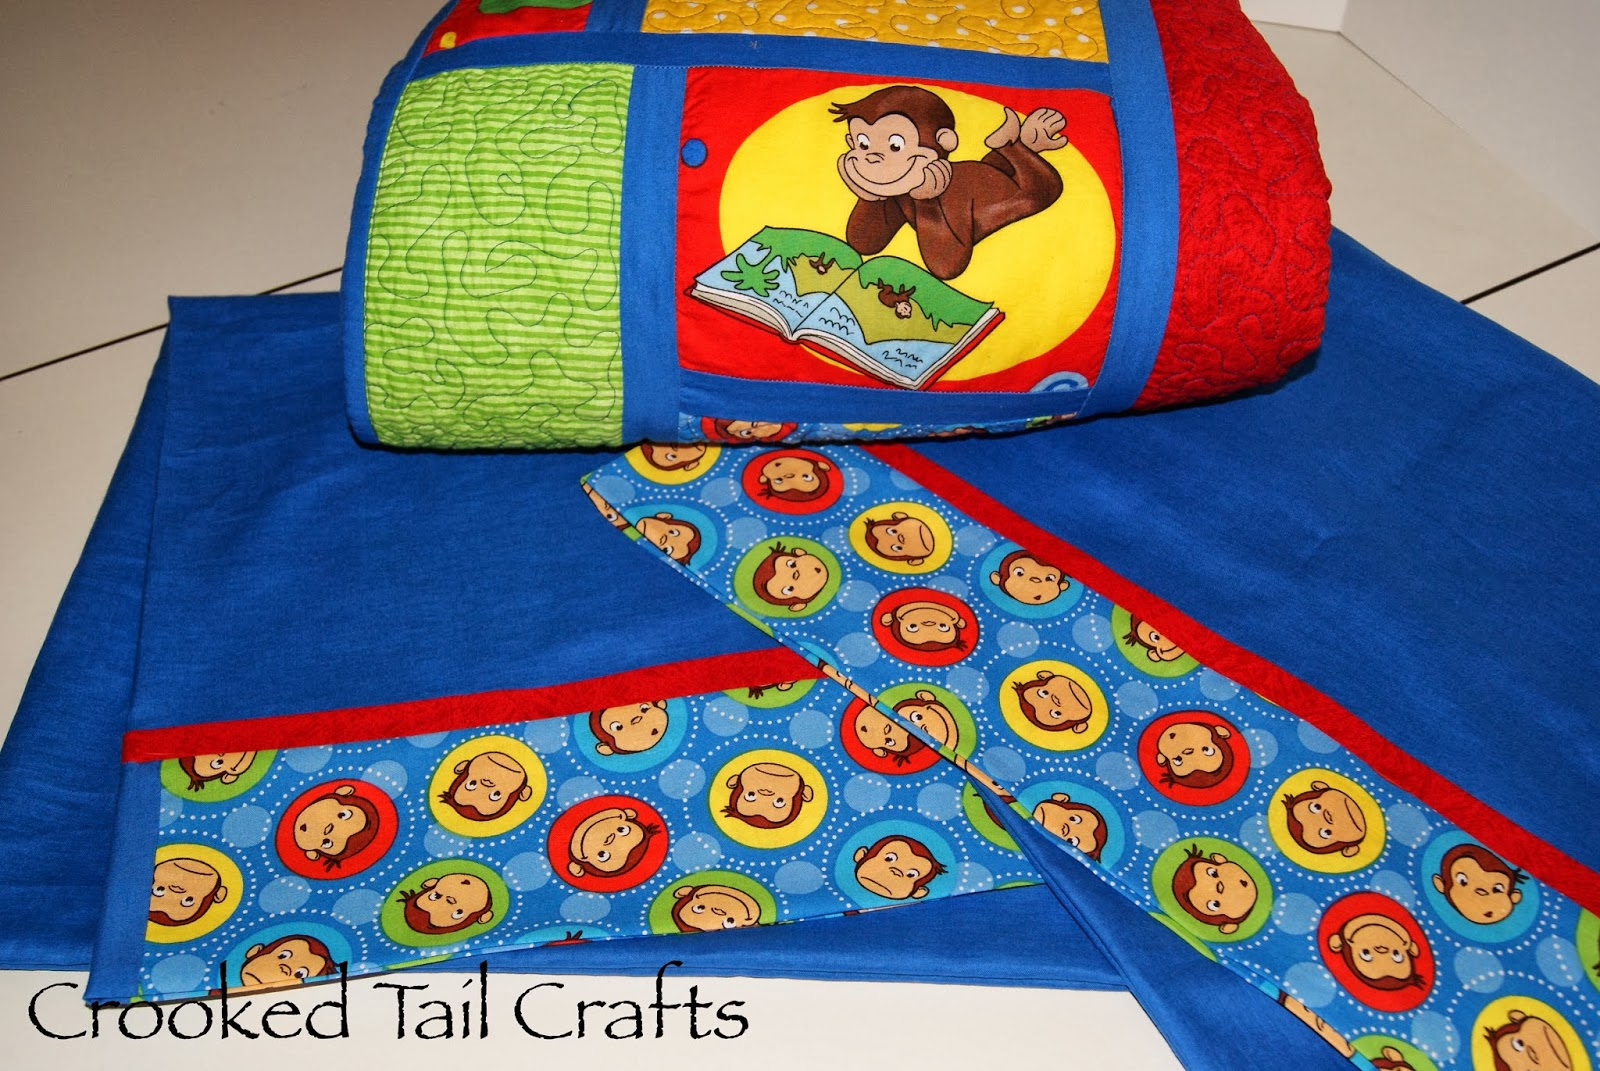 Crooked Tail Crafts Curious George Quilt